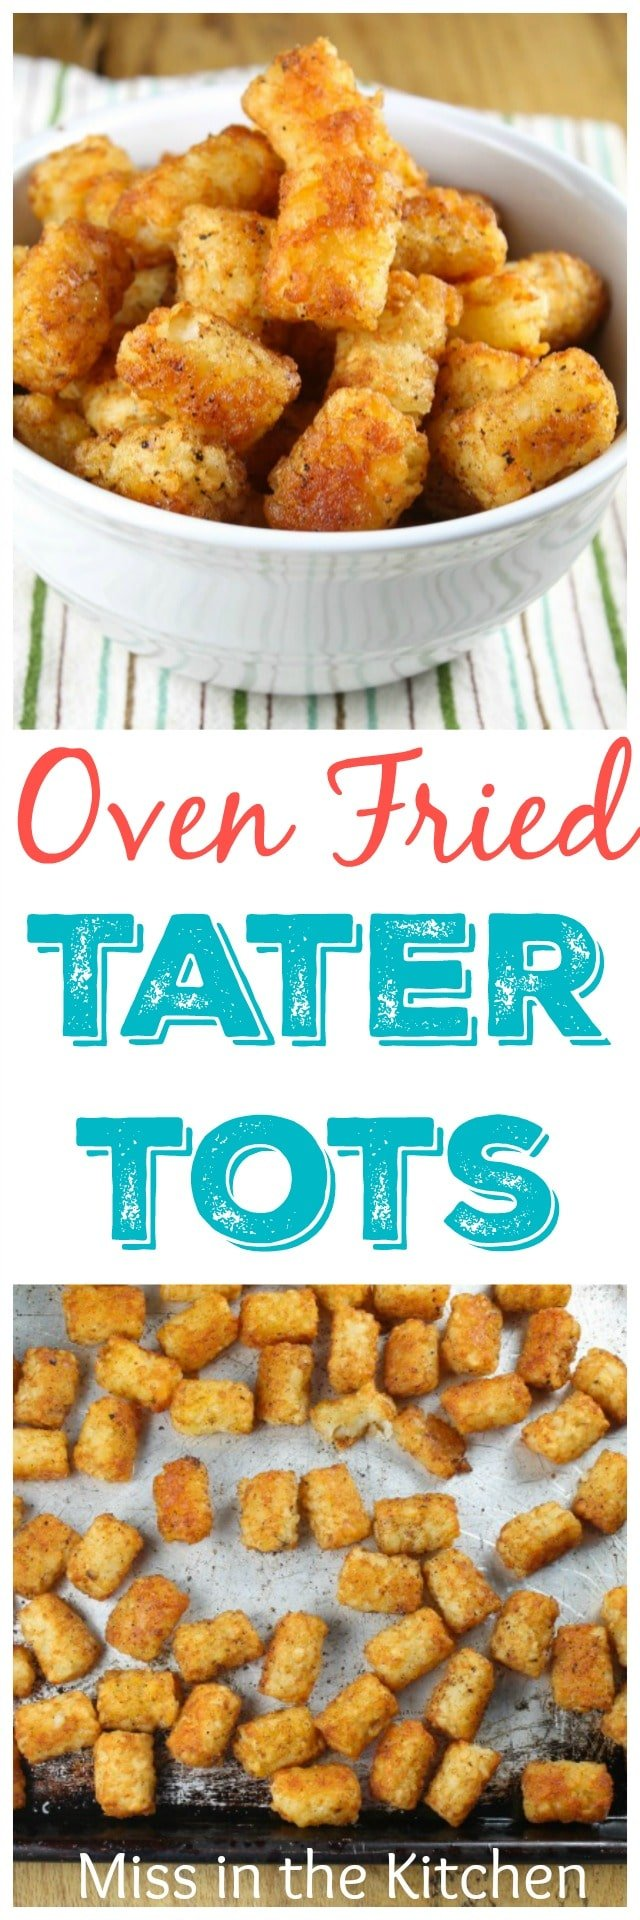 Oven Fried Tater Tots are the perfect side for any meal! Recipe from MissintheKitchen